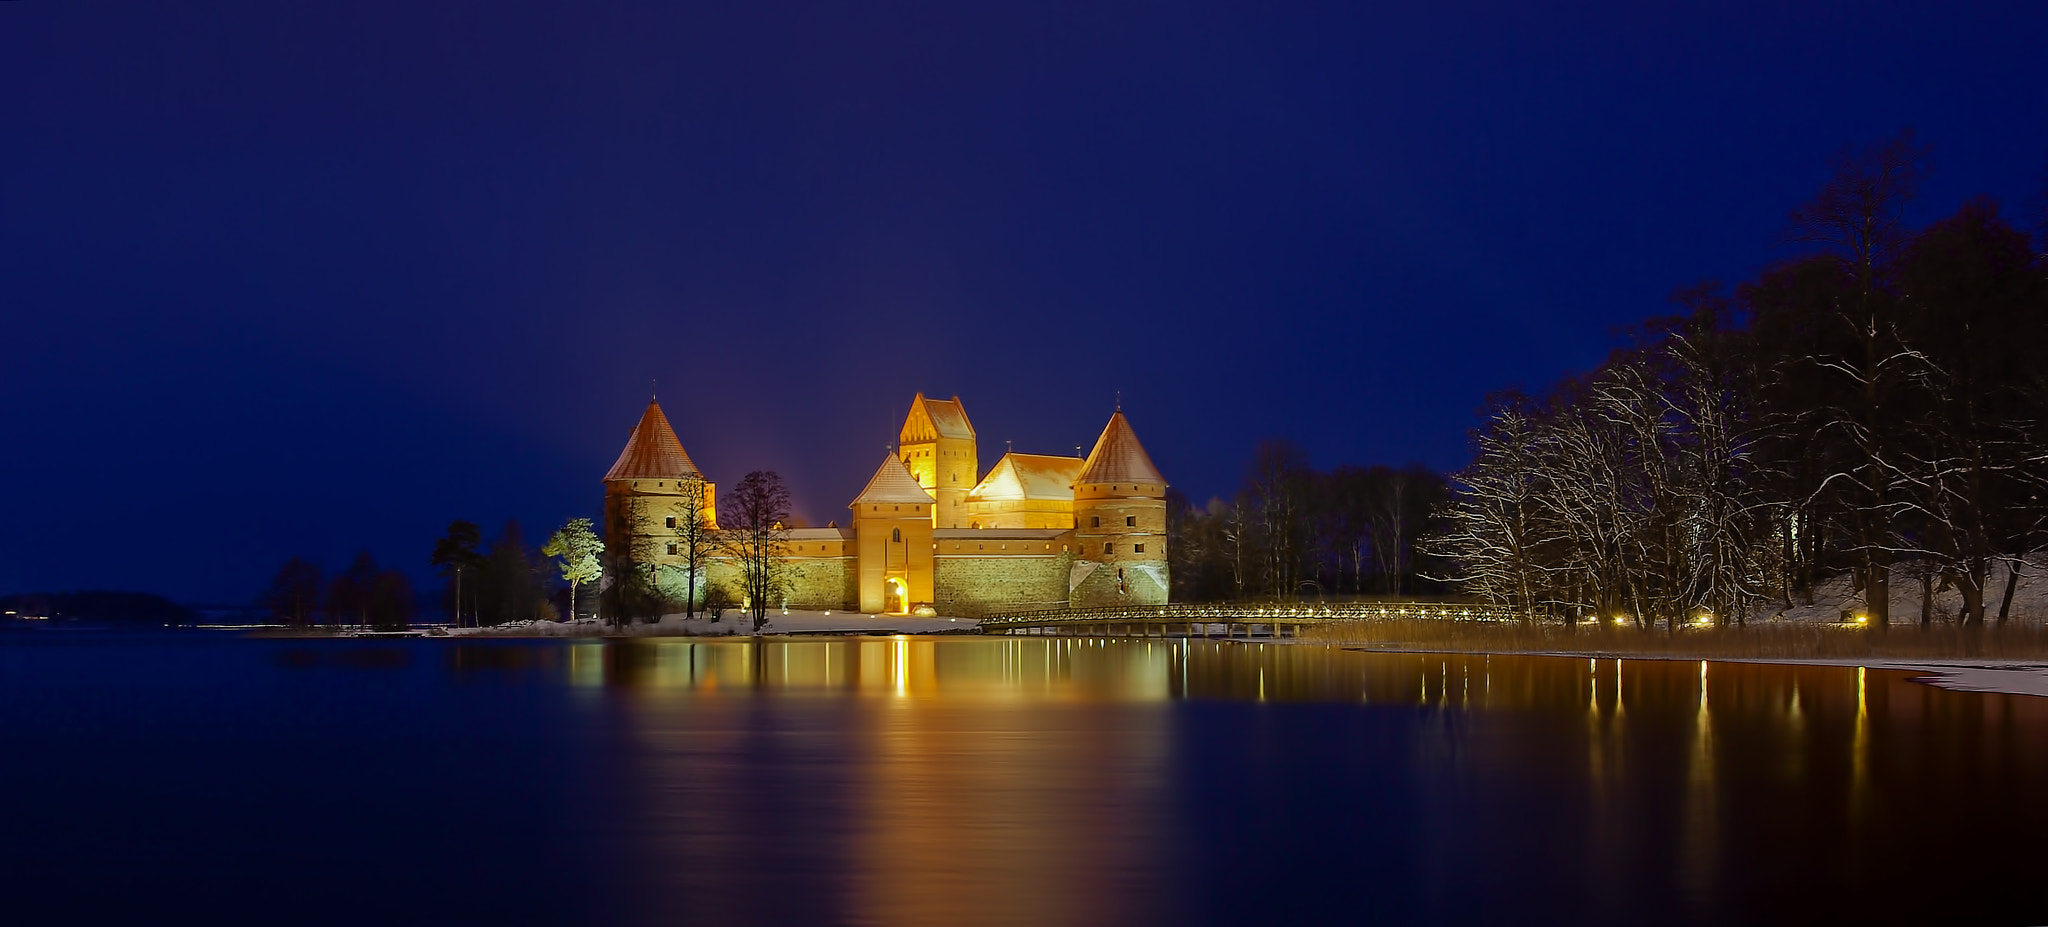 Photograph Amber Castle of Trakai by Laimonas Ciūnys on 500px